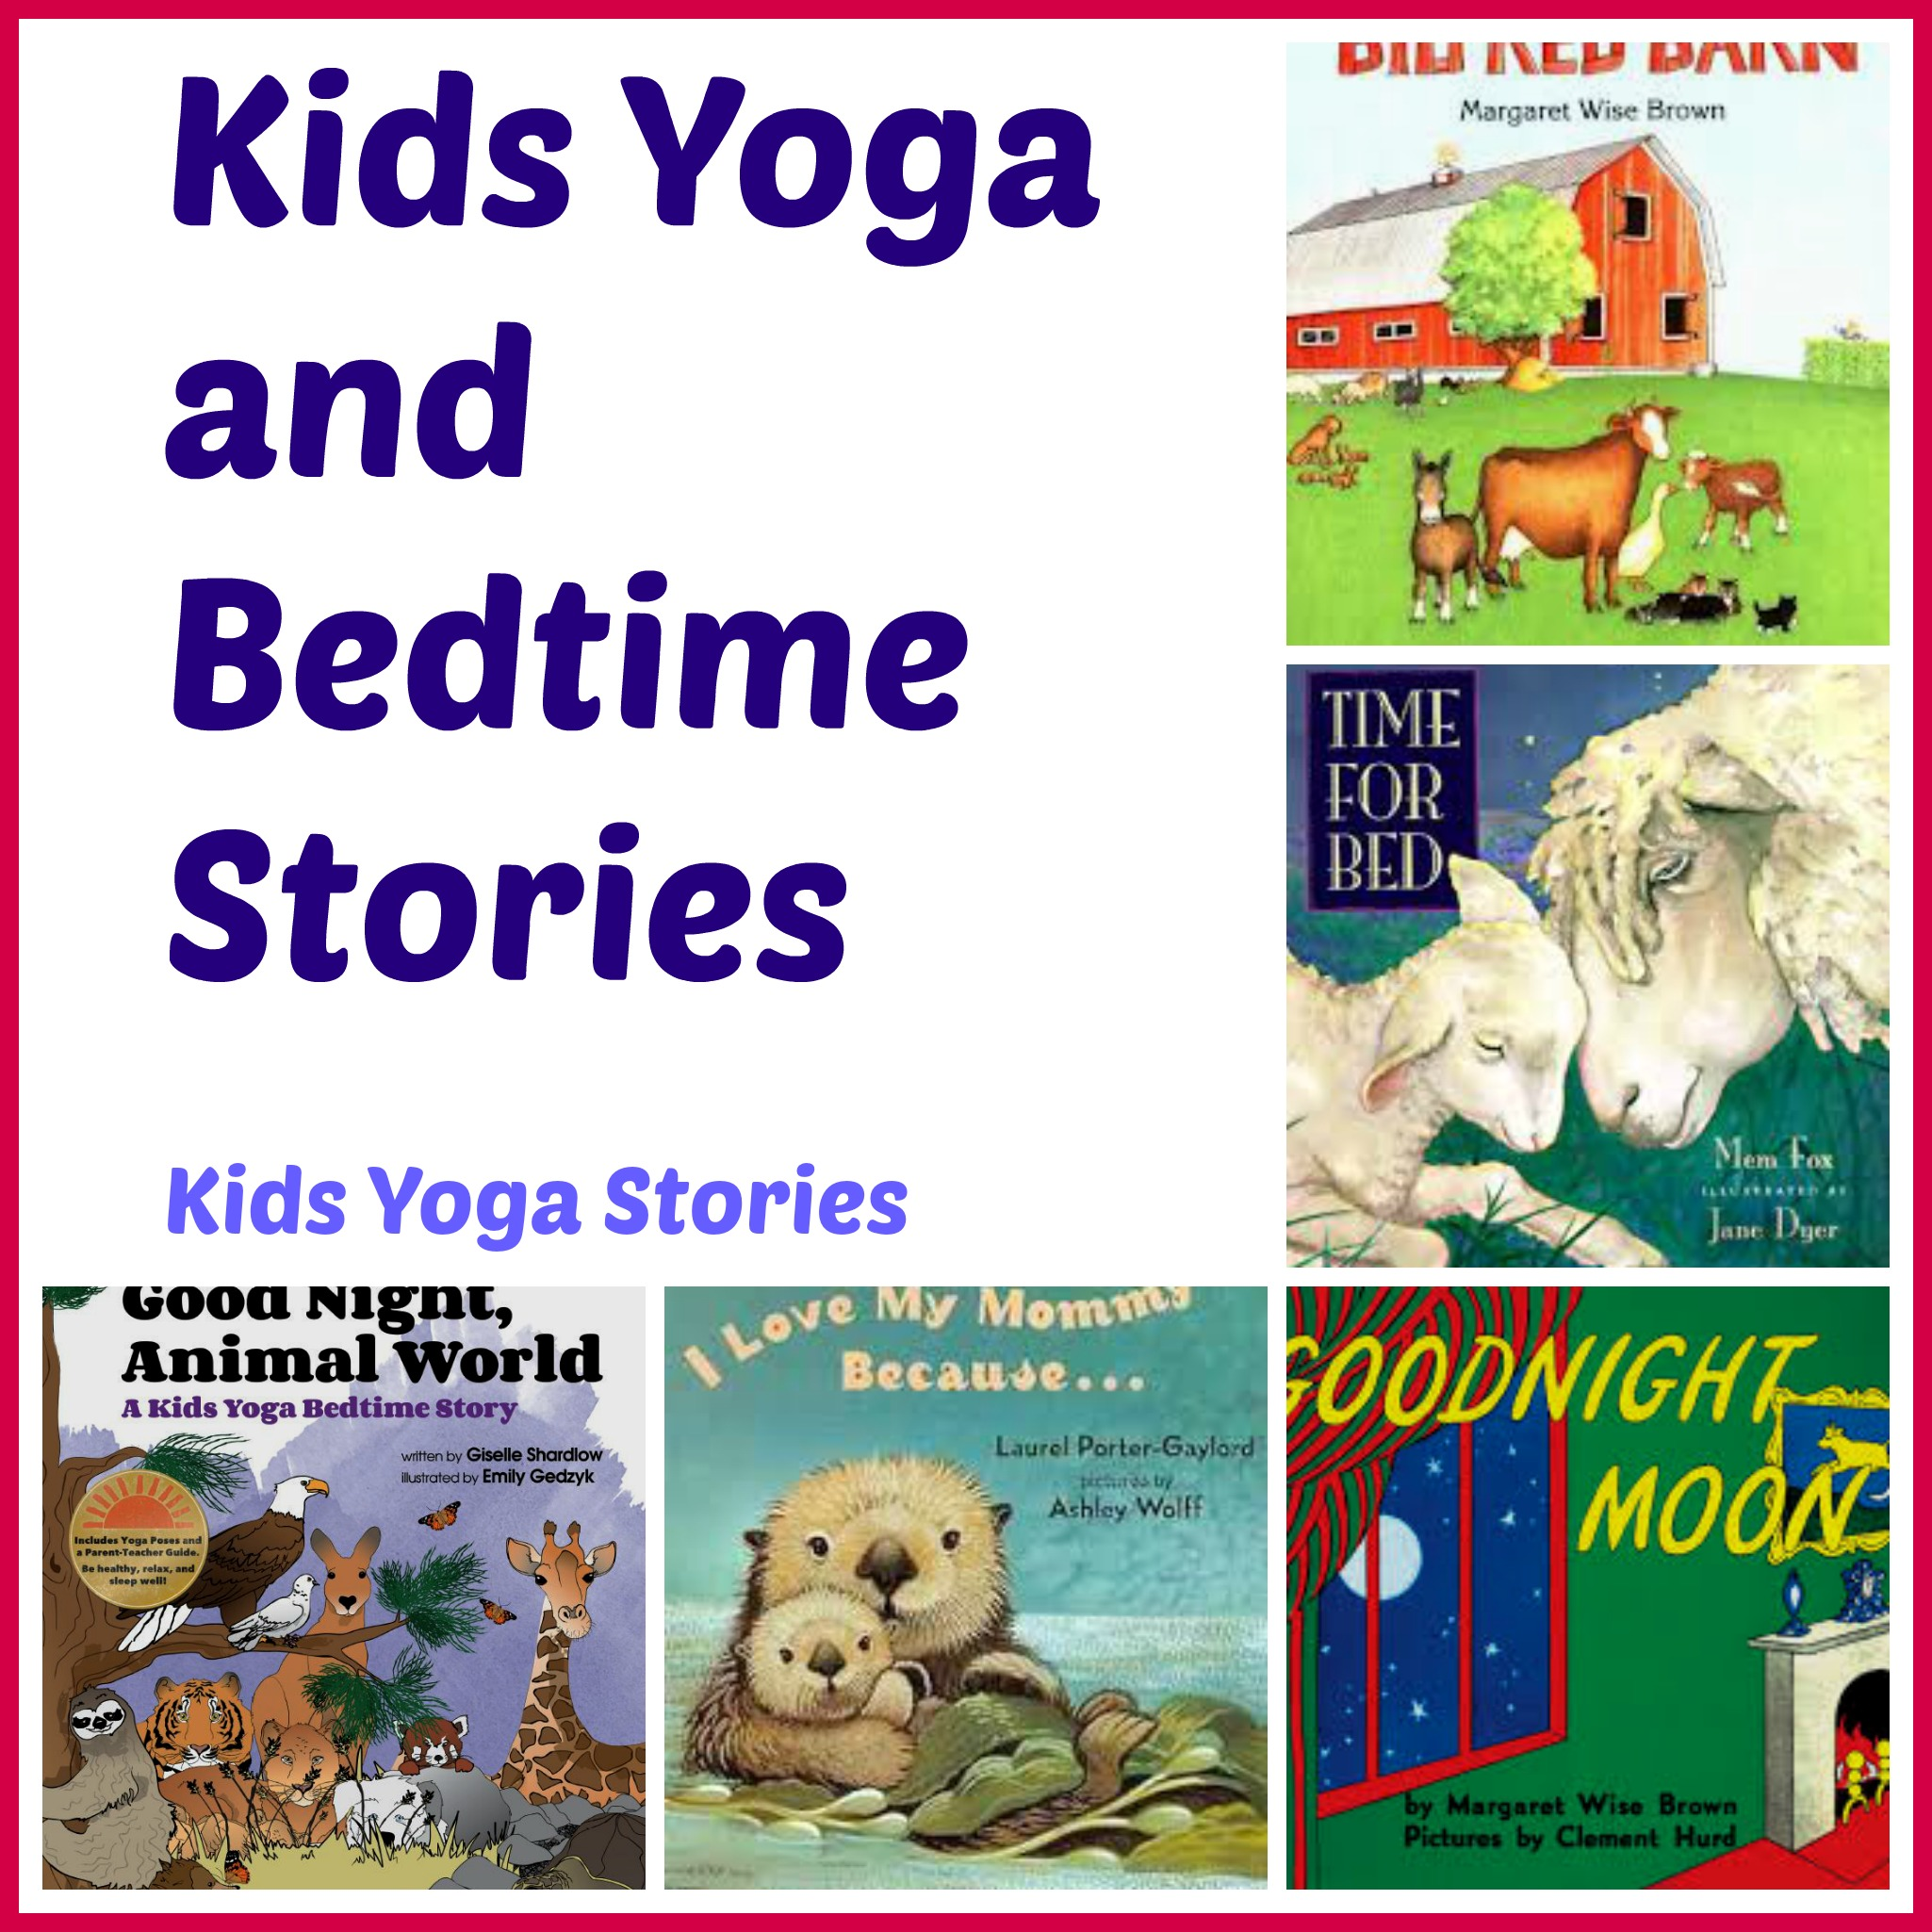 Kids Yoga and Bedtime Stories | Kids Yoga Stories